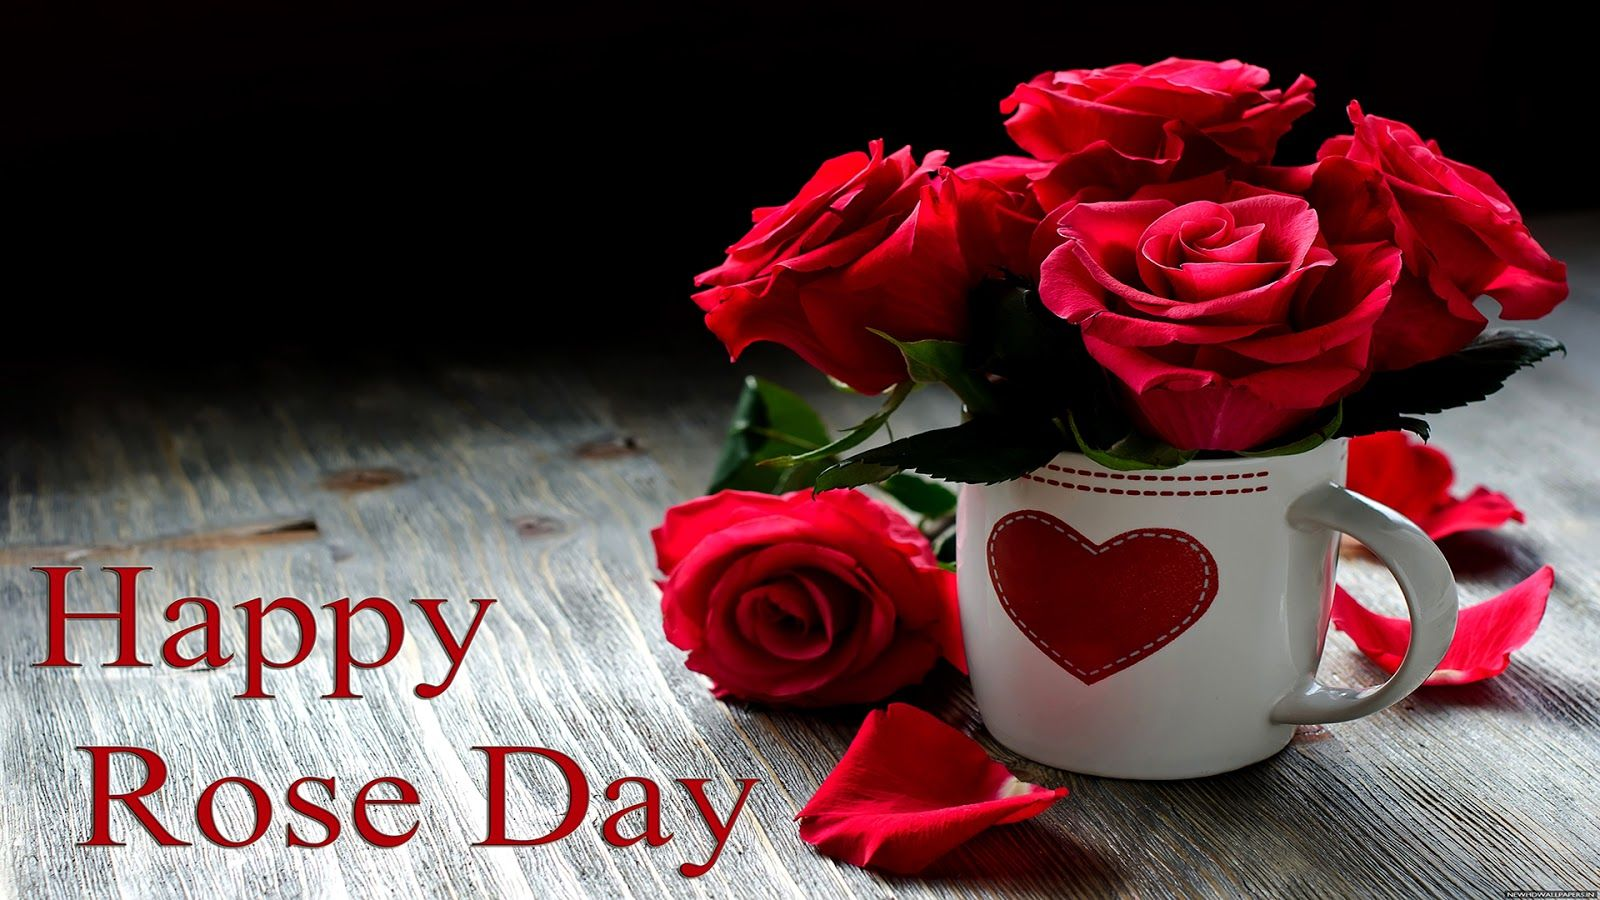 Happy Rose Day Wallpapers Hd Download Free 1080p Happy Rose Day Wallpaper Rose Day Wallpaper Good Night Wallpaper